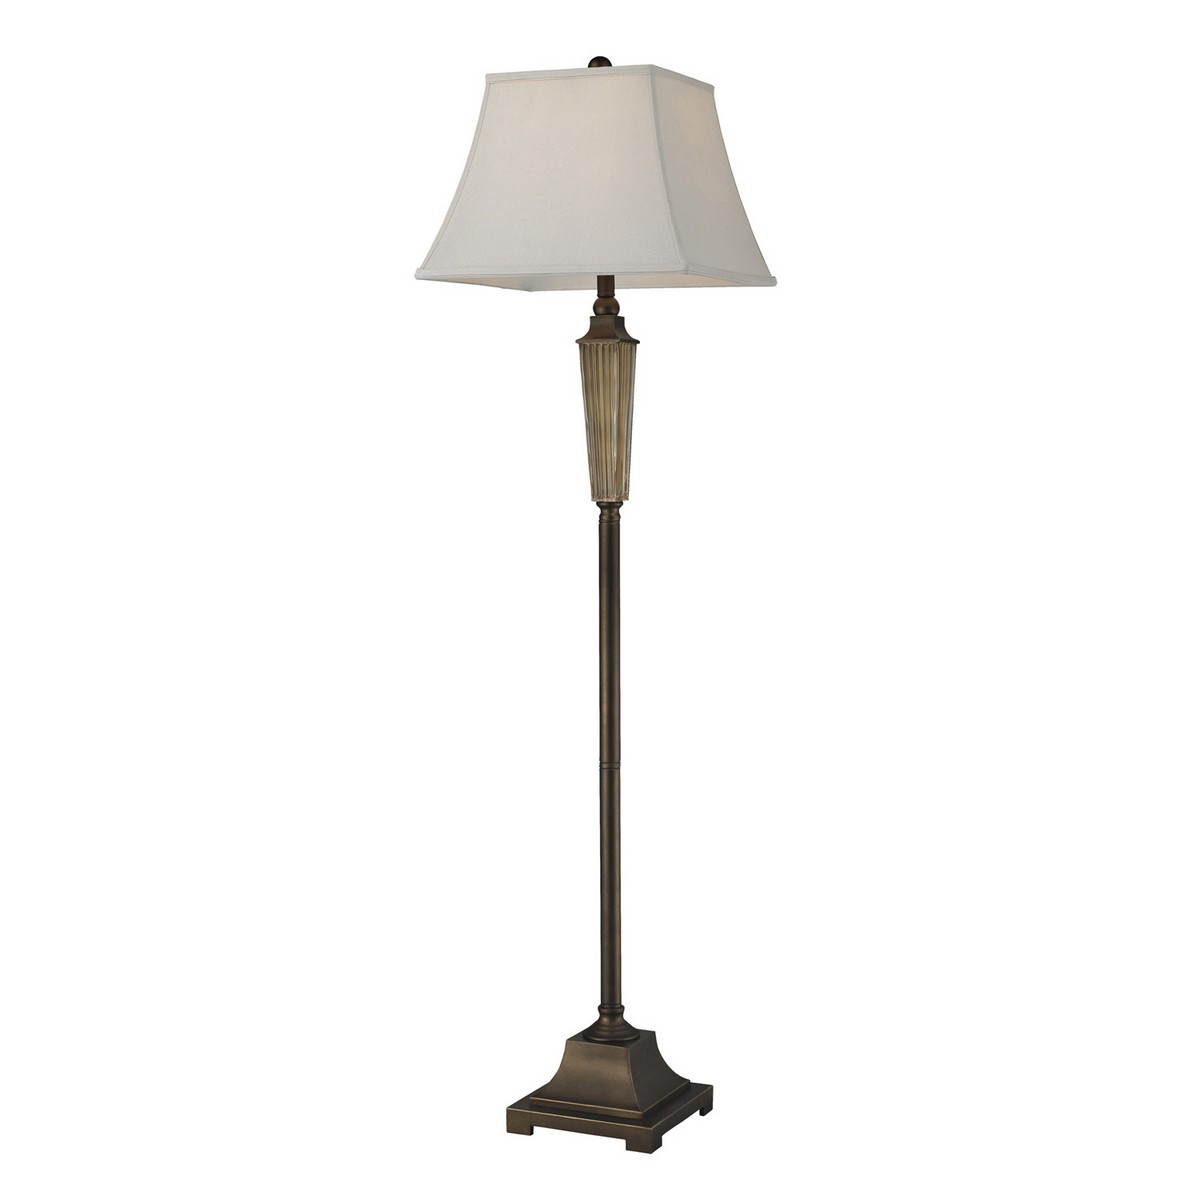 Elk Lighting D134 Floor Lamp - Amber Smoked Glass/Bronze Base and Cap